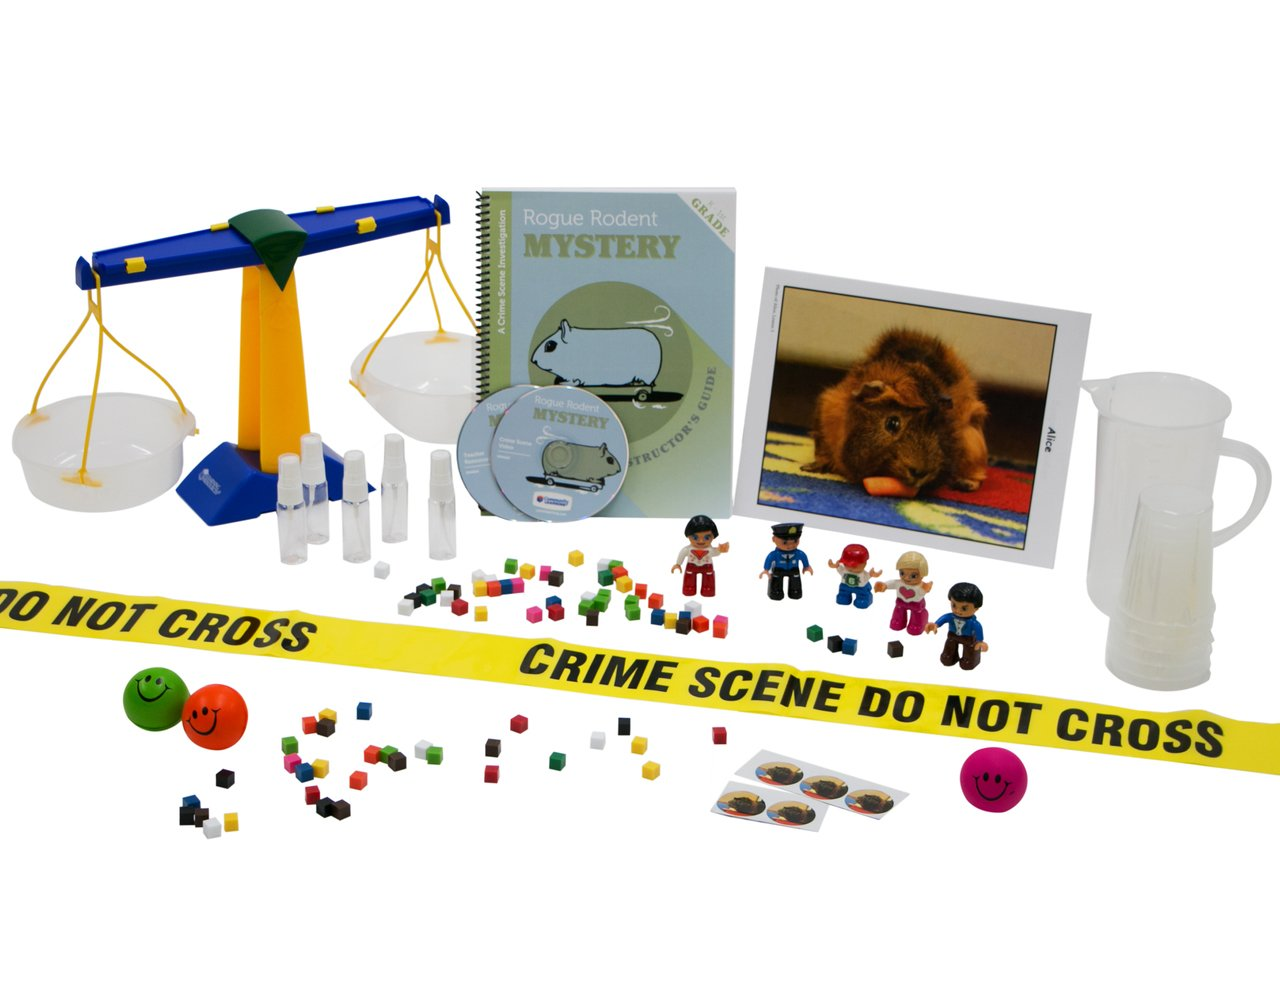 The Rogue Rodent Mystery:A Crime Scene Investigation for Grades K-1, Includes Essentials Supplies for Class of 30 and CD with Student handouts and Complete Supply List. by Community Learning